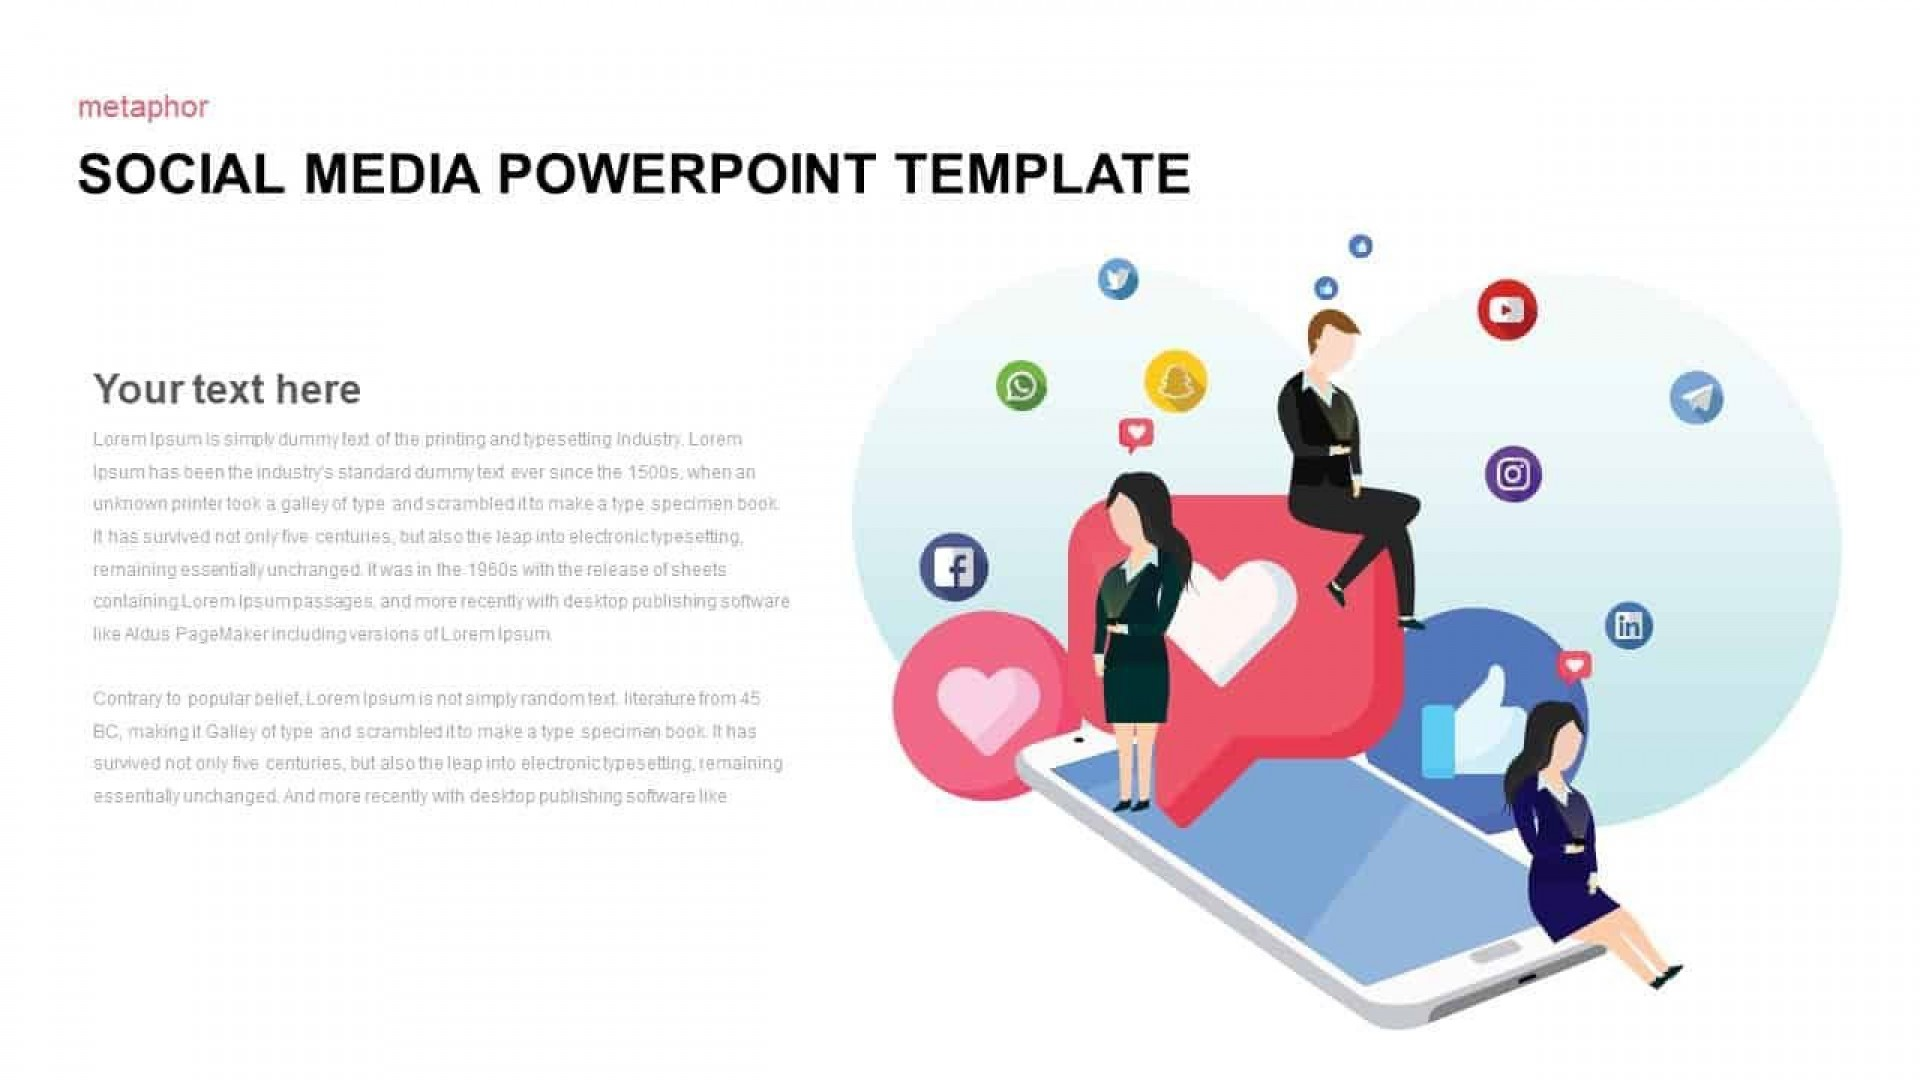 007 Formidable Social Media Powerpoint Template Image  Templates Report Free Social-media-marketing-powerpoint-template1920